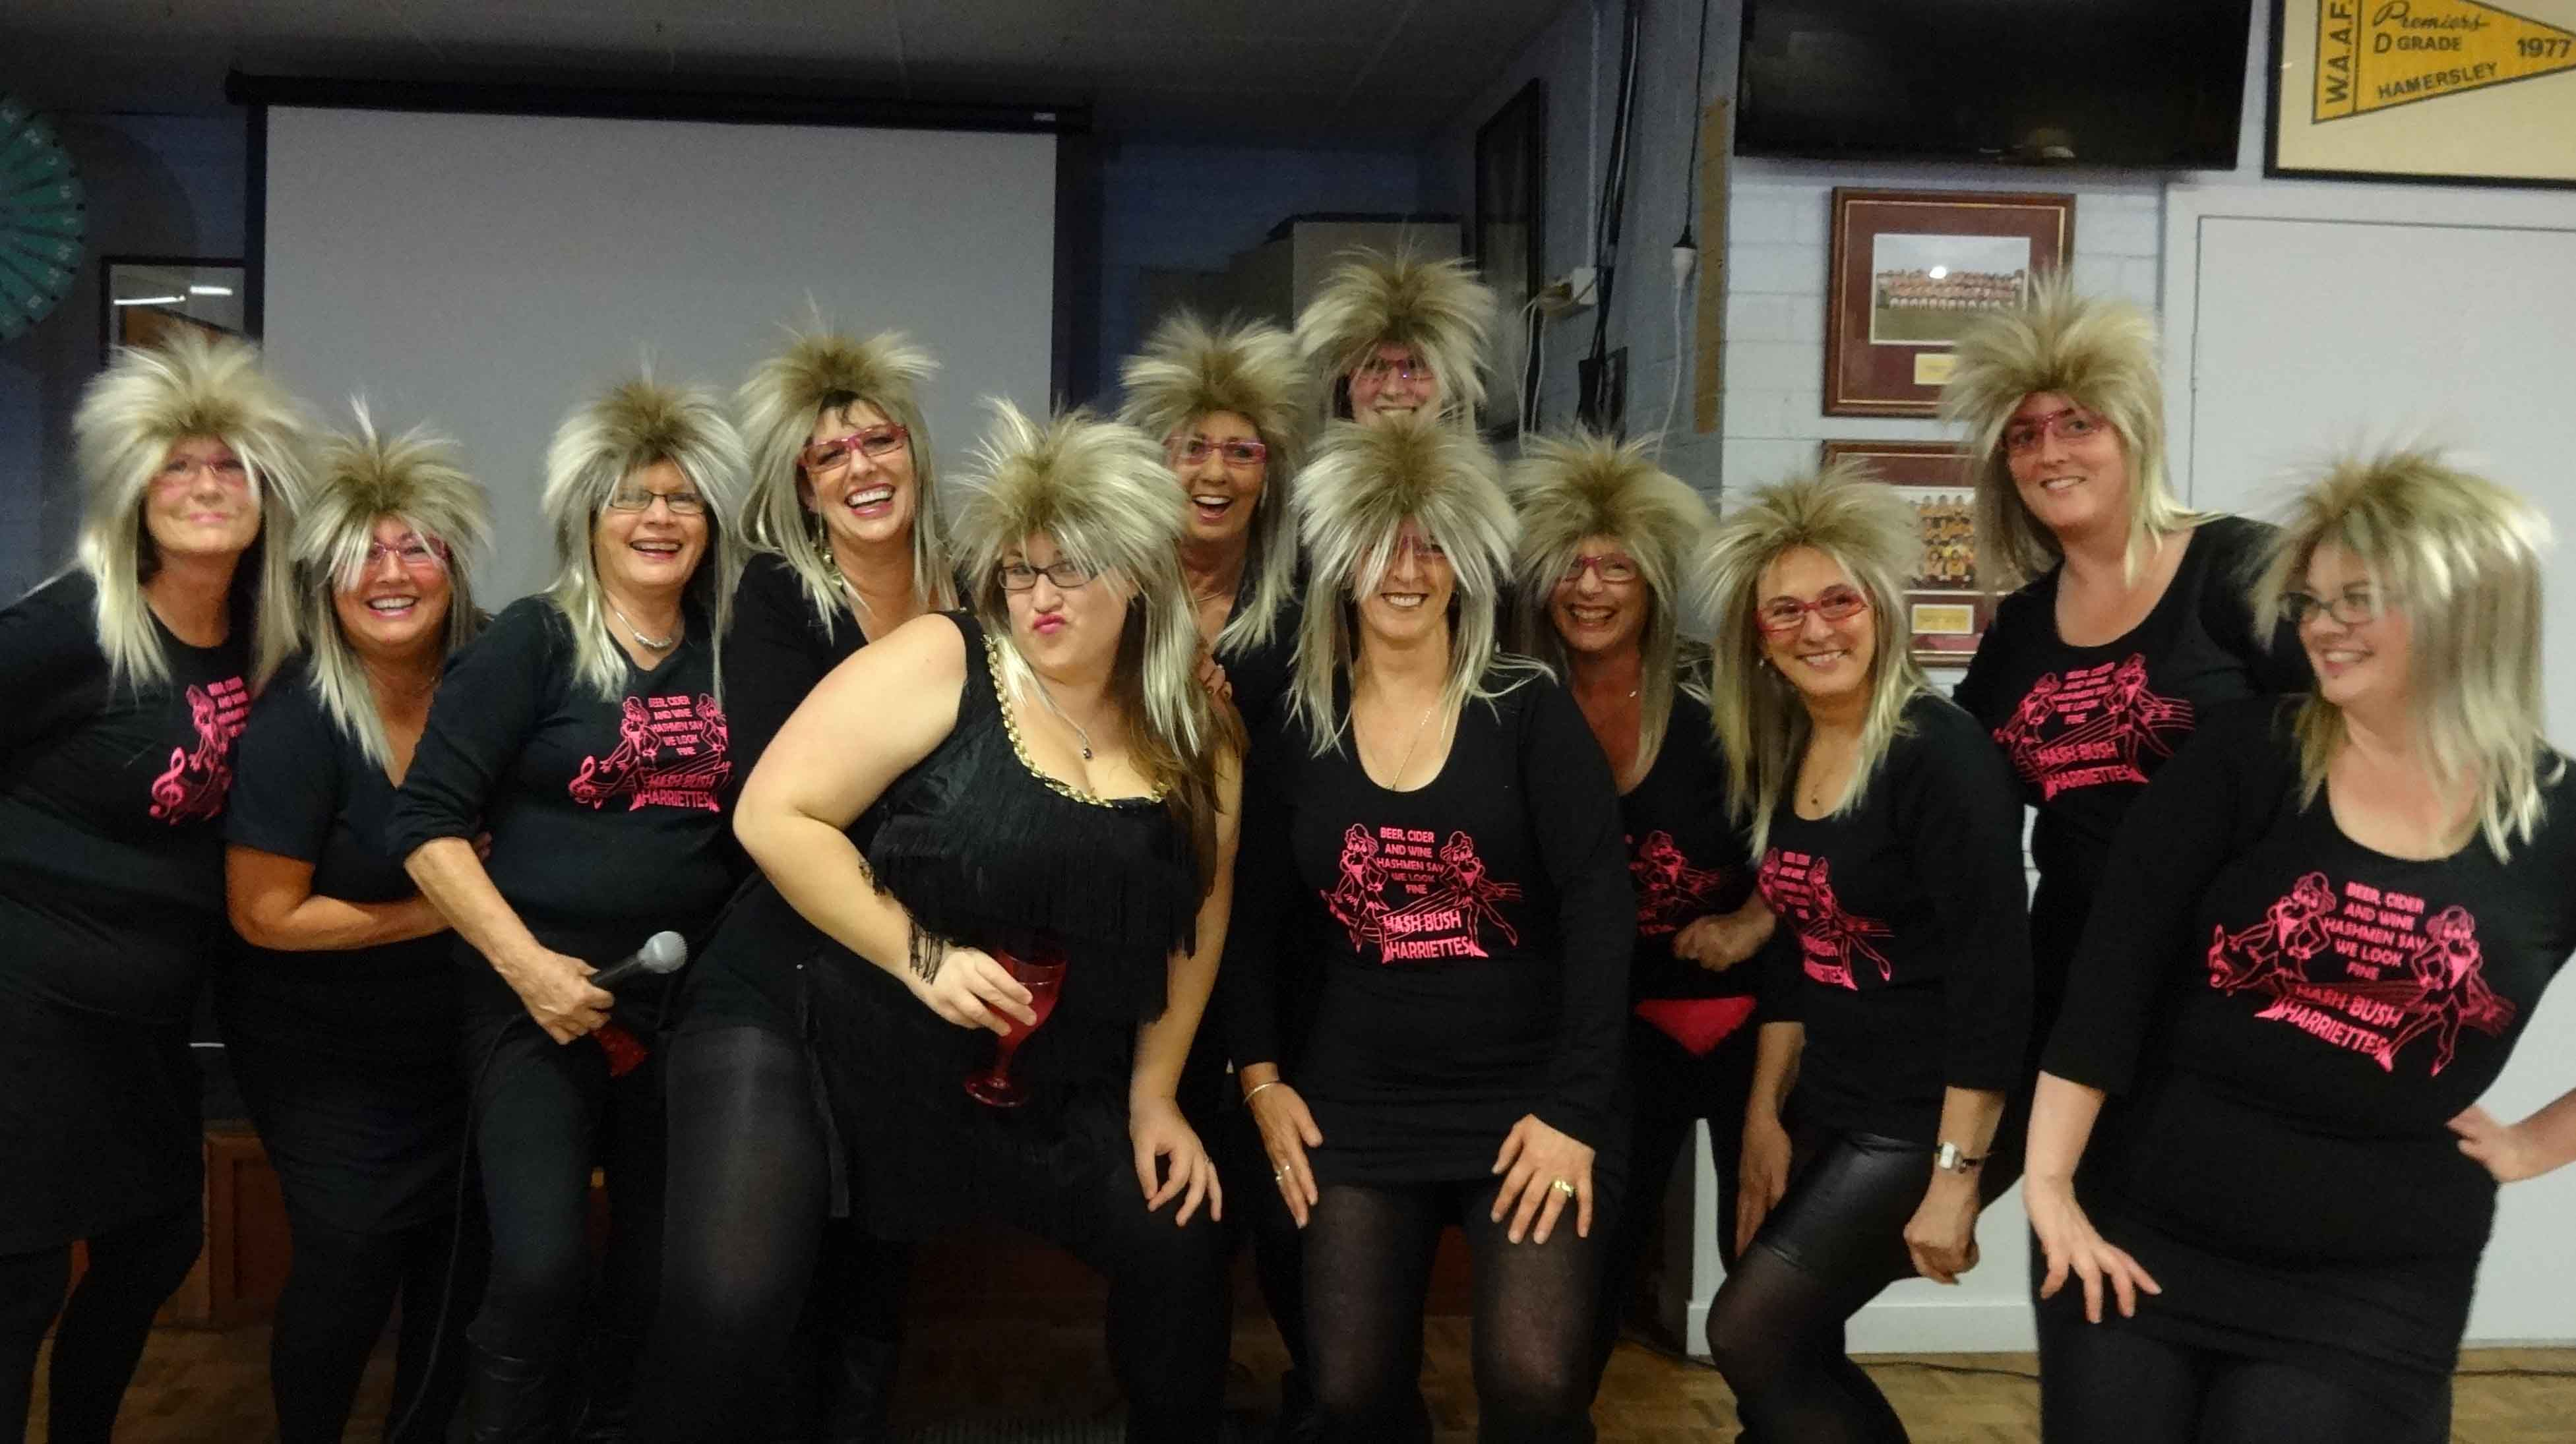 """AGM """"Come Dressed as a Song"""" Run according to Wombat, Cheapskate and Kebab"""